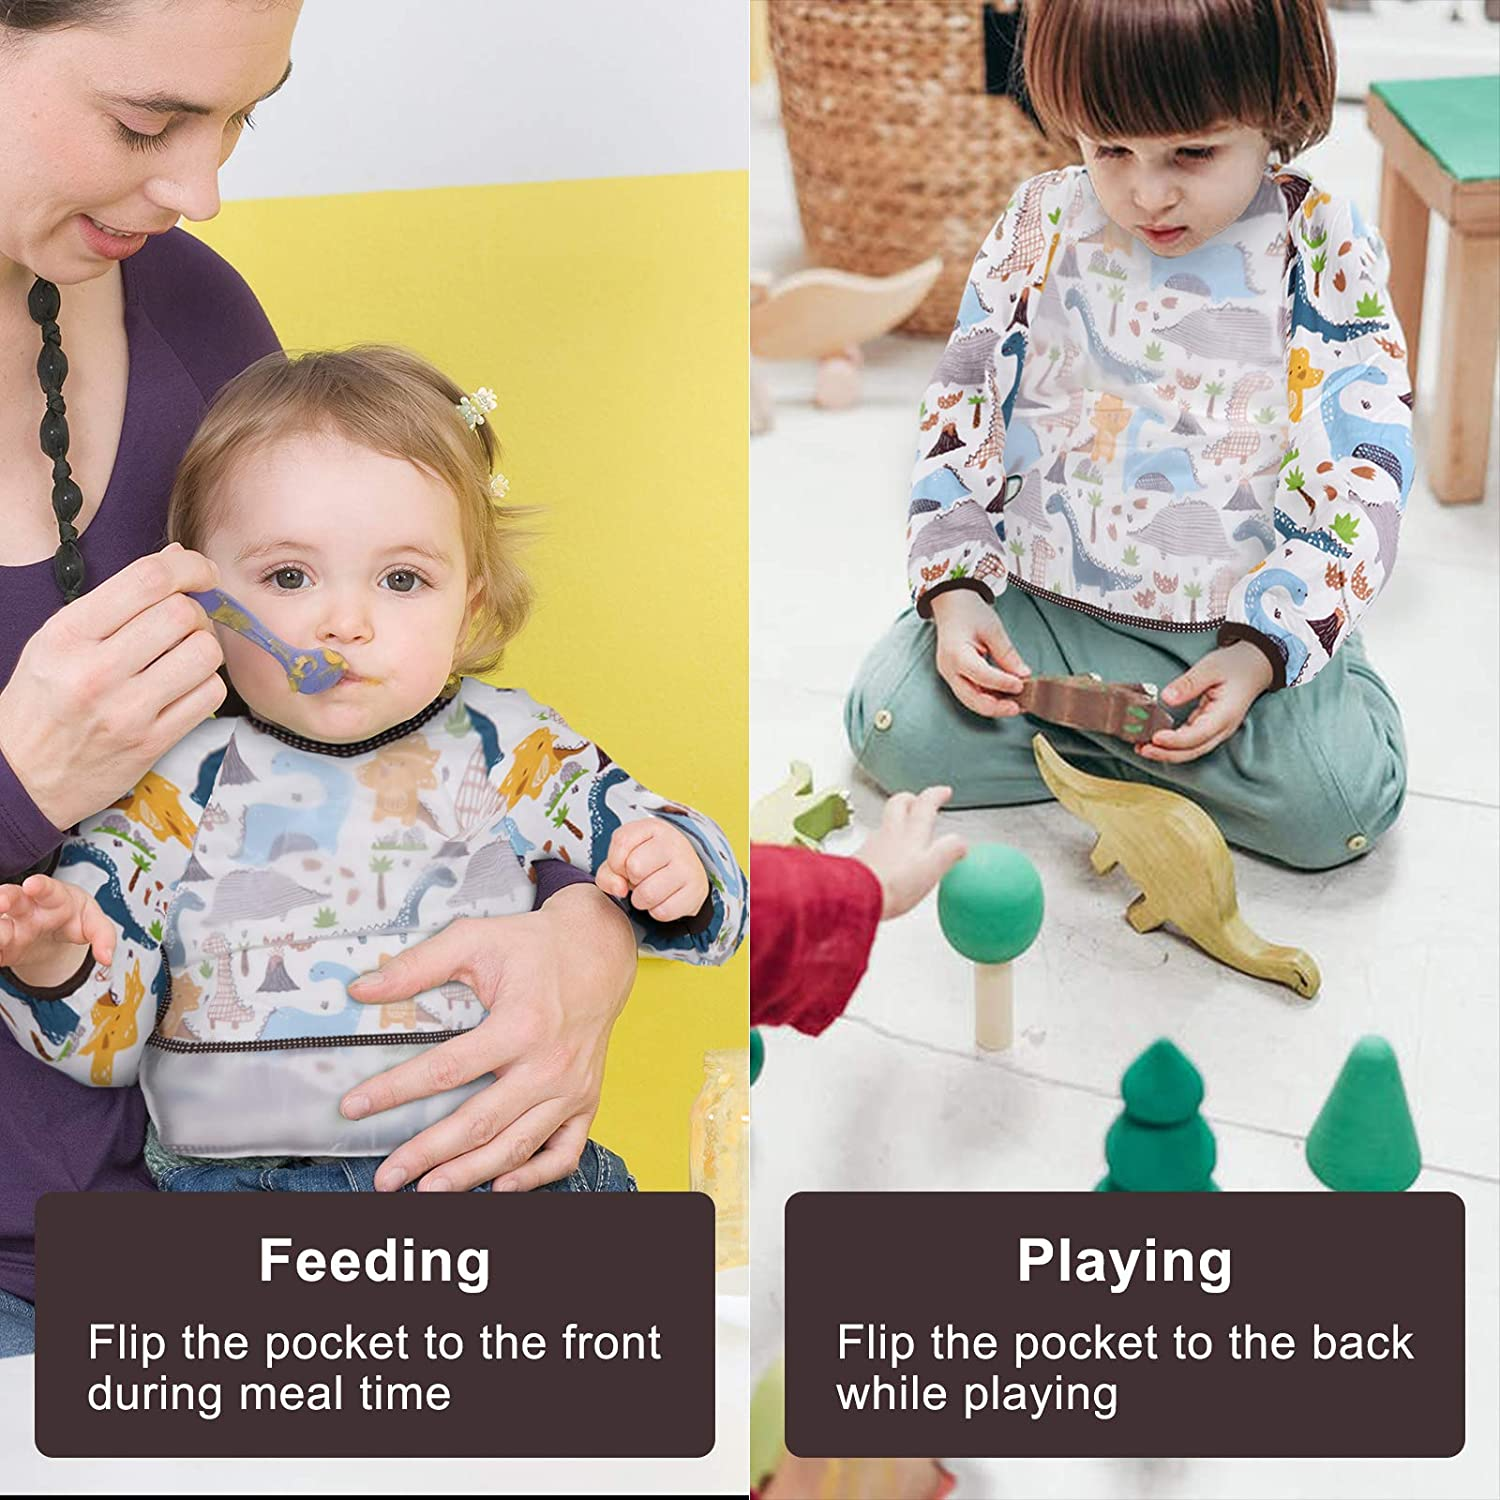 Toddler Bib with Sleeves for Feeding Waterproof Baby Bibs with Pocket 6-24 Months Accmor 3Pcs Baby Long Sleeve Bib